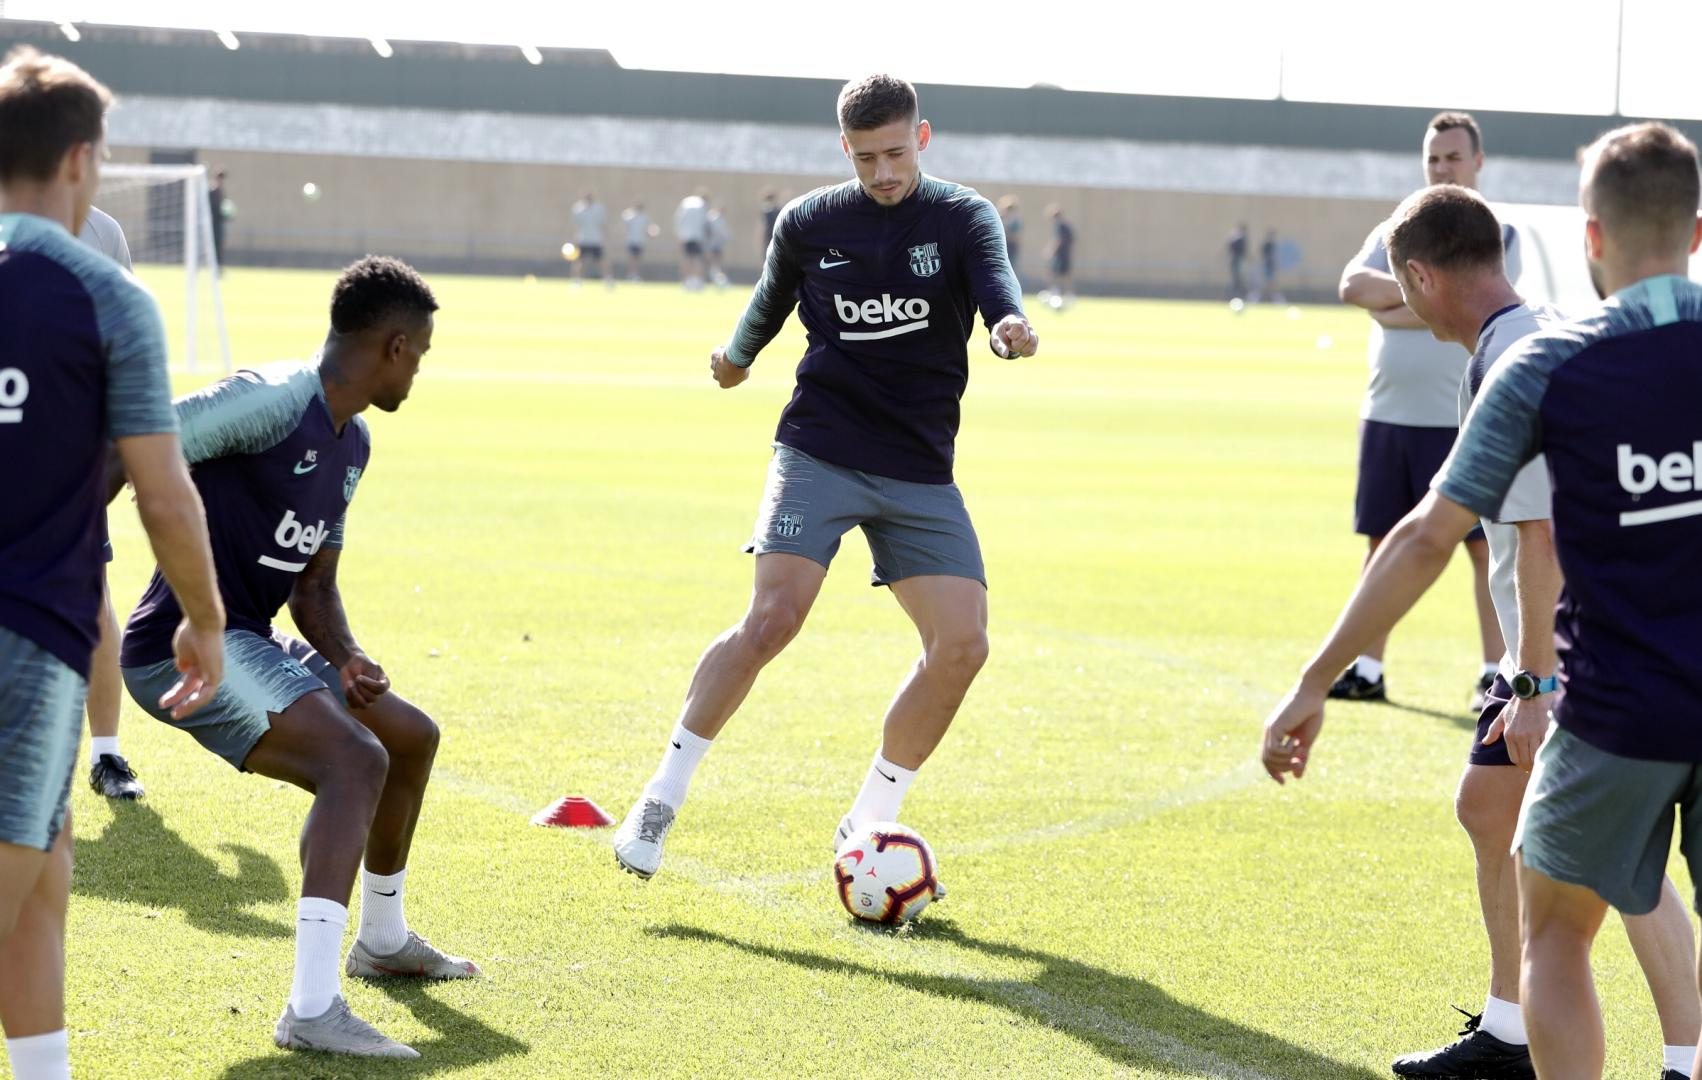 �� The sun came out for Thursday's ��️‍♂️ workout! ���� #ForçaBarça https://t.co/57xKnFNrkK